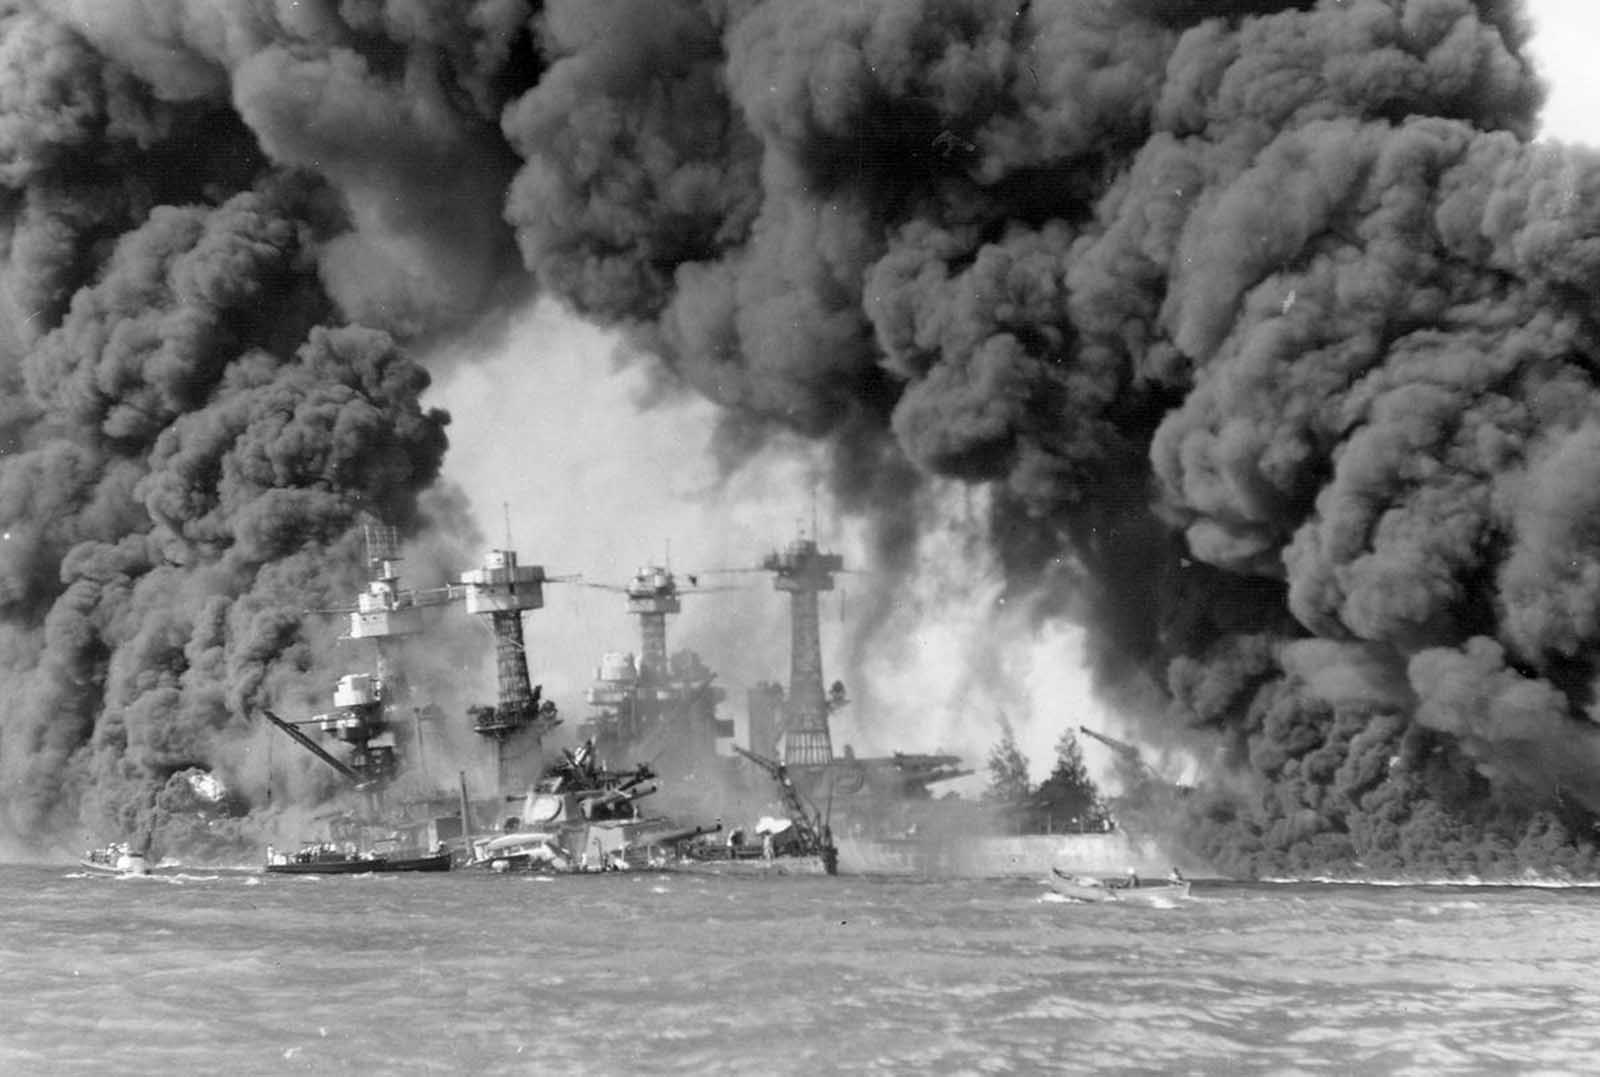 The battleships West Virginia and Tennessee burning after the Japanese attack on Pearl Harbor, on December 7, 1941.